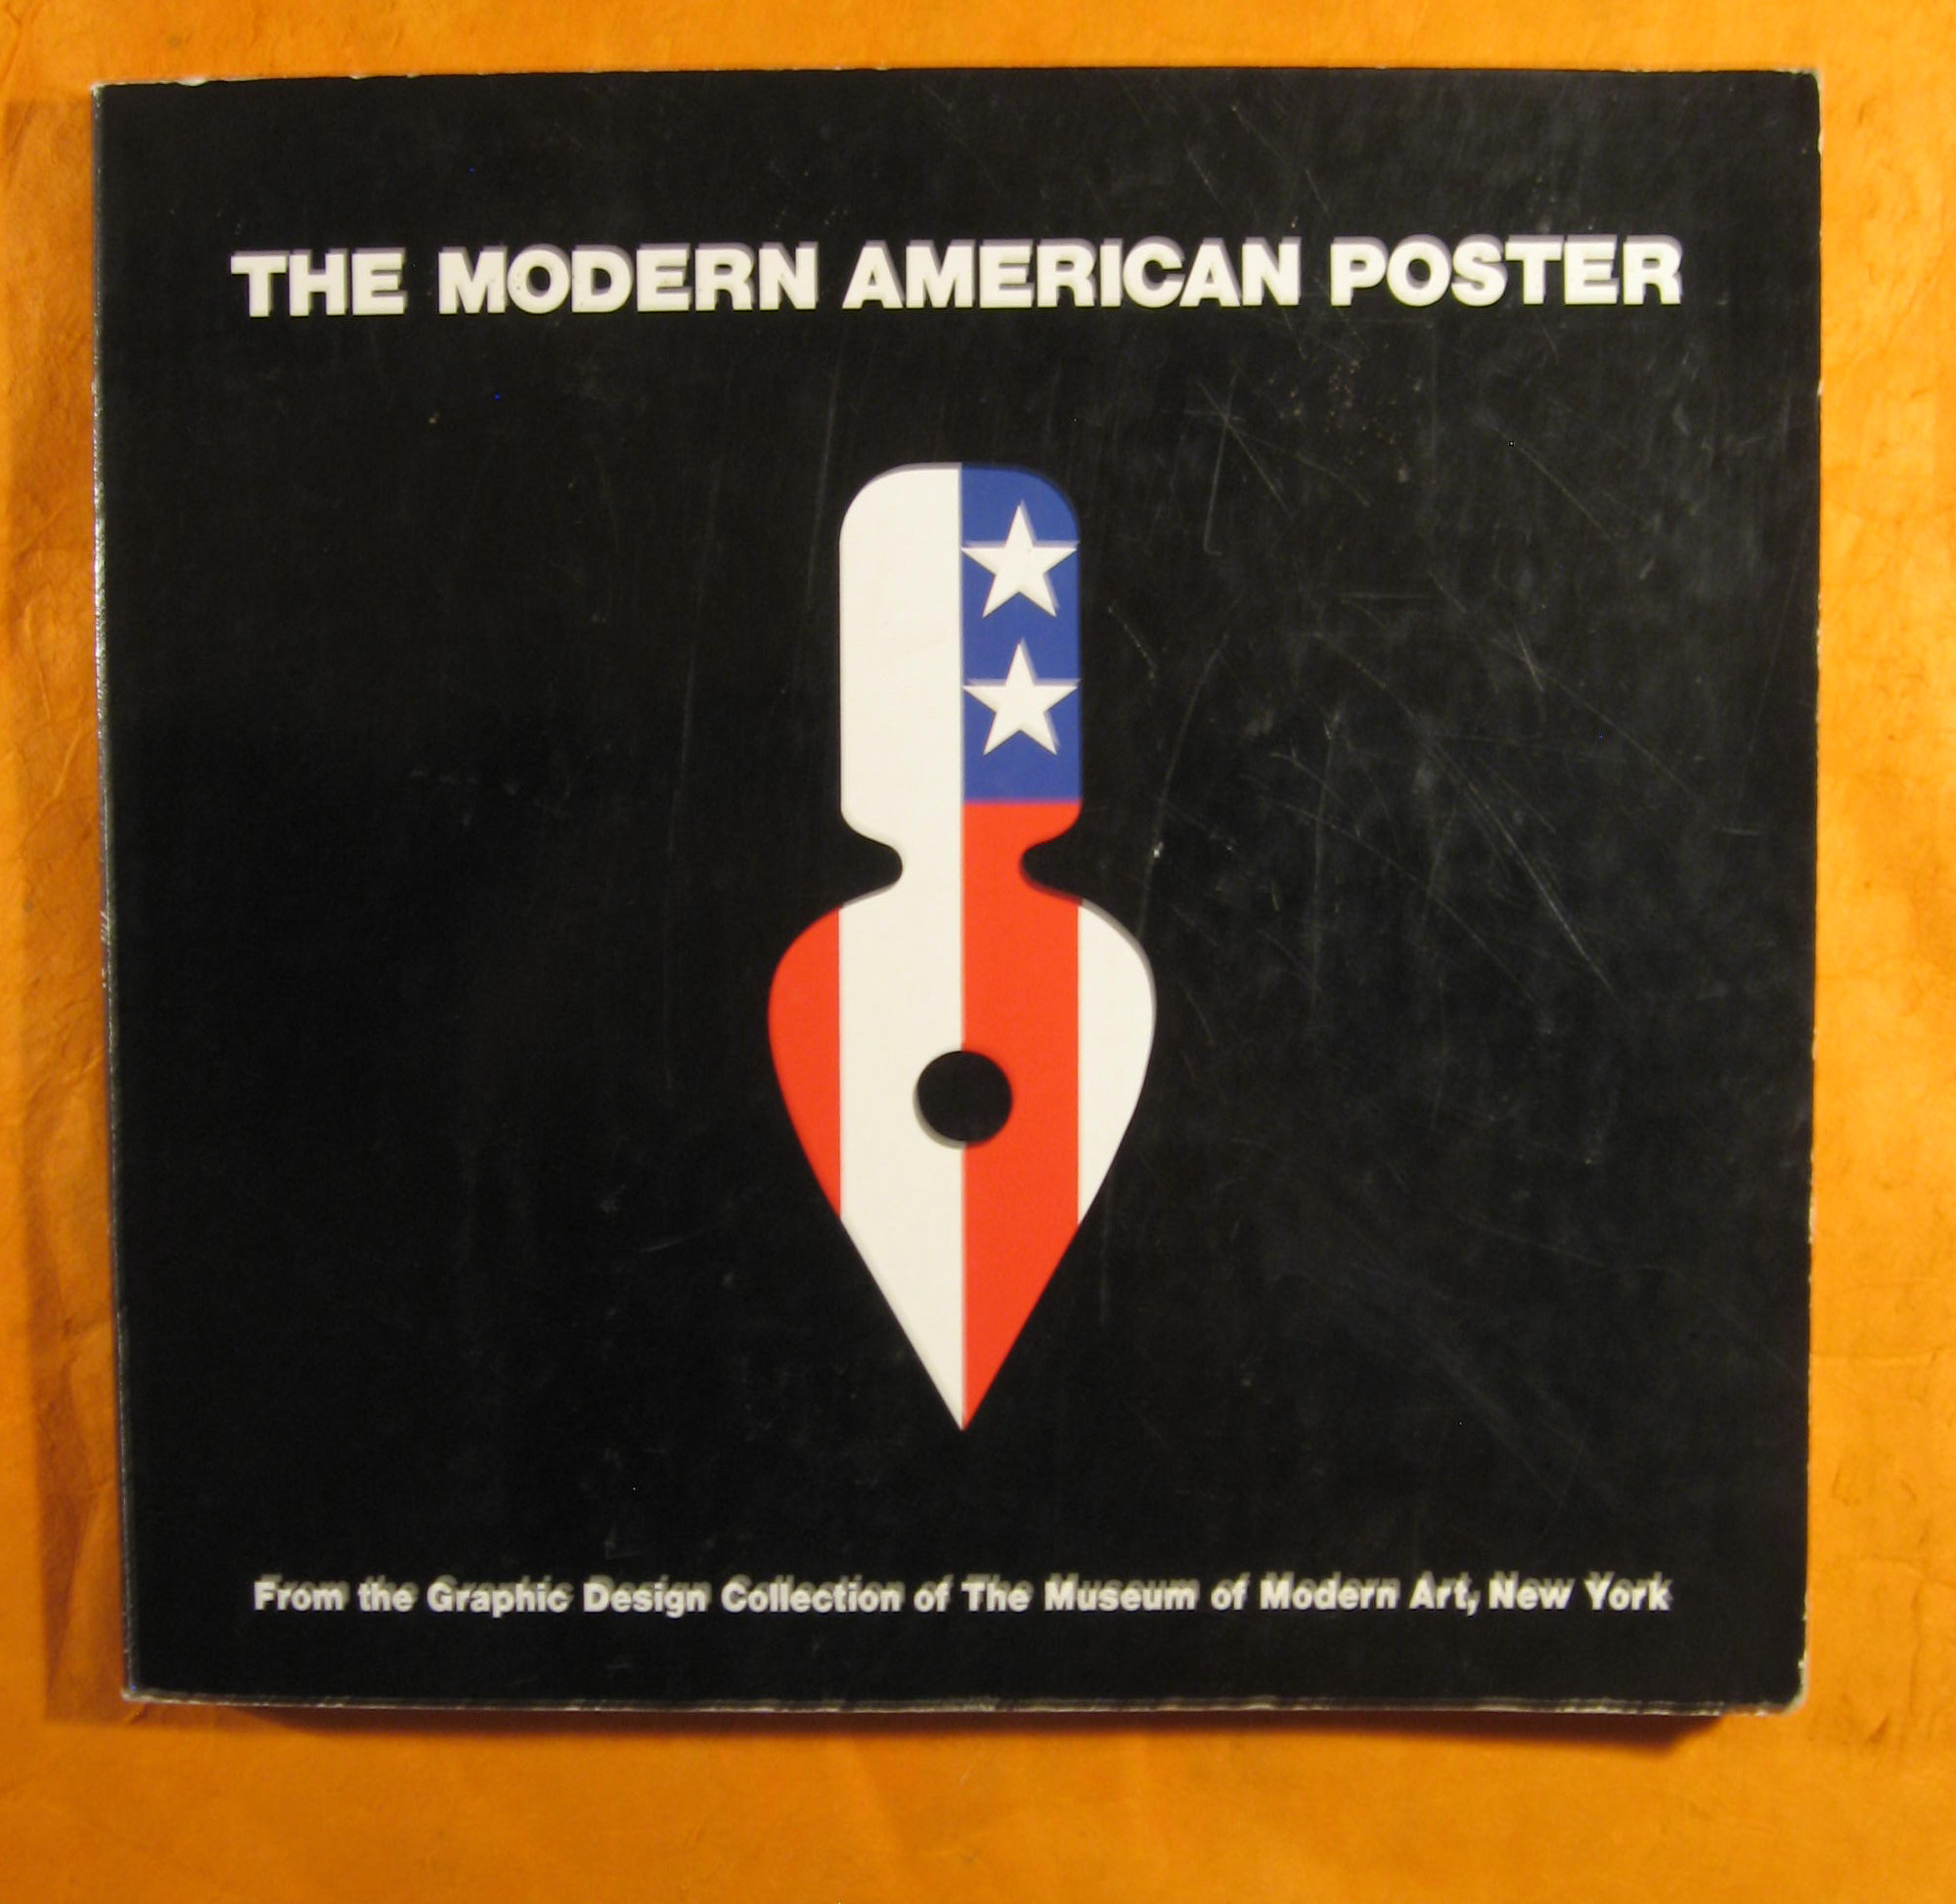 Image for The Modern American Poster, From The Graphic Design Collection of The Museum of Modern Art, New York